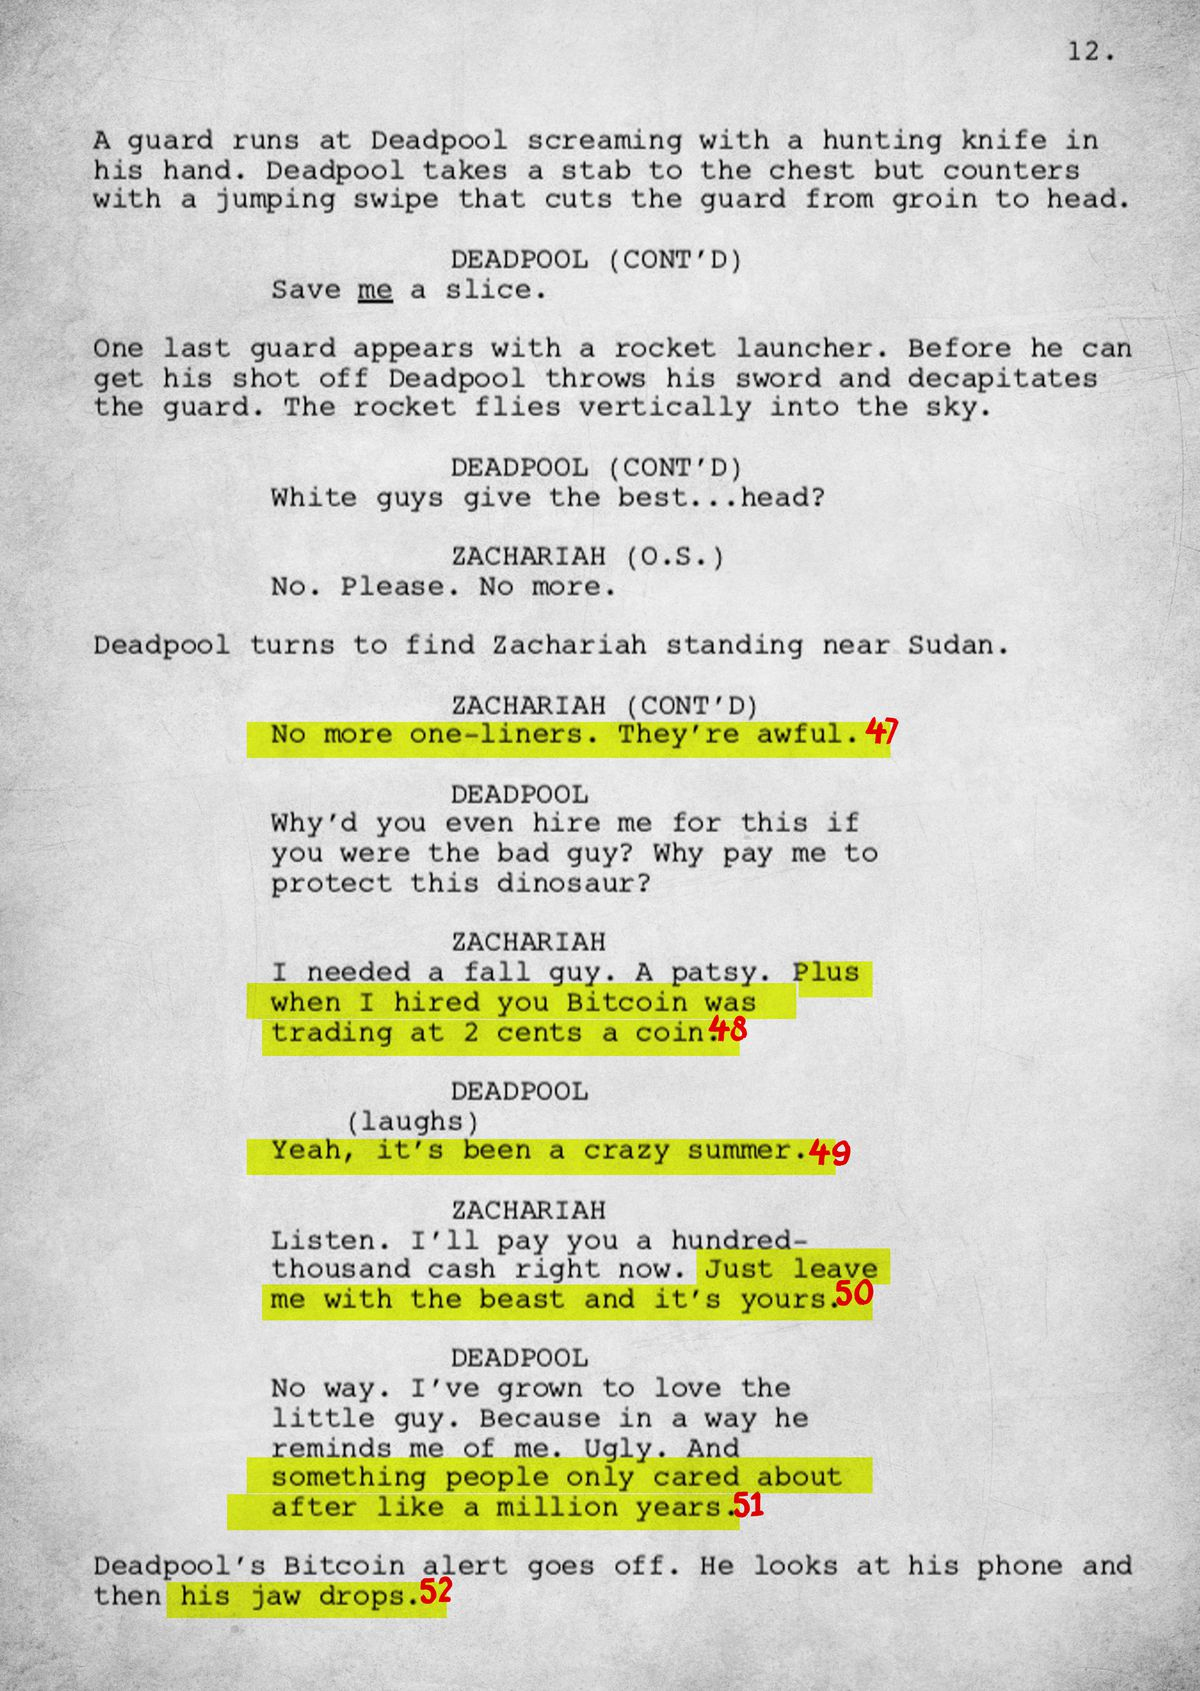 An Annotated Version of Donald Glover\'s \'Deadpool\' Script - The Ringer